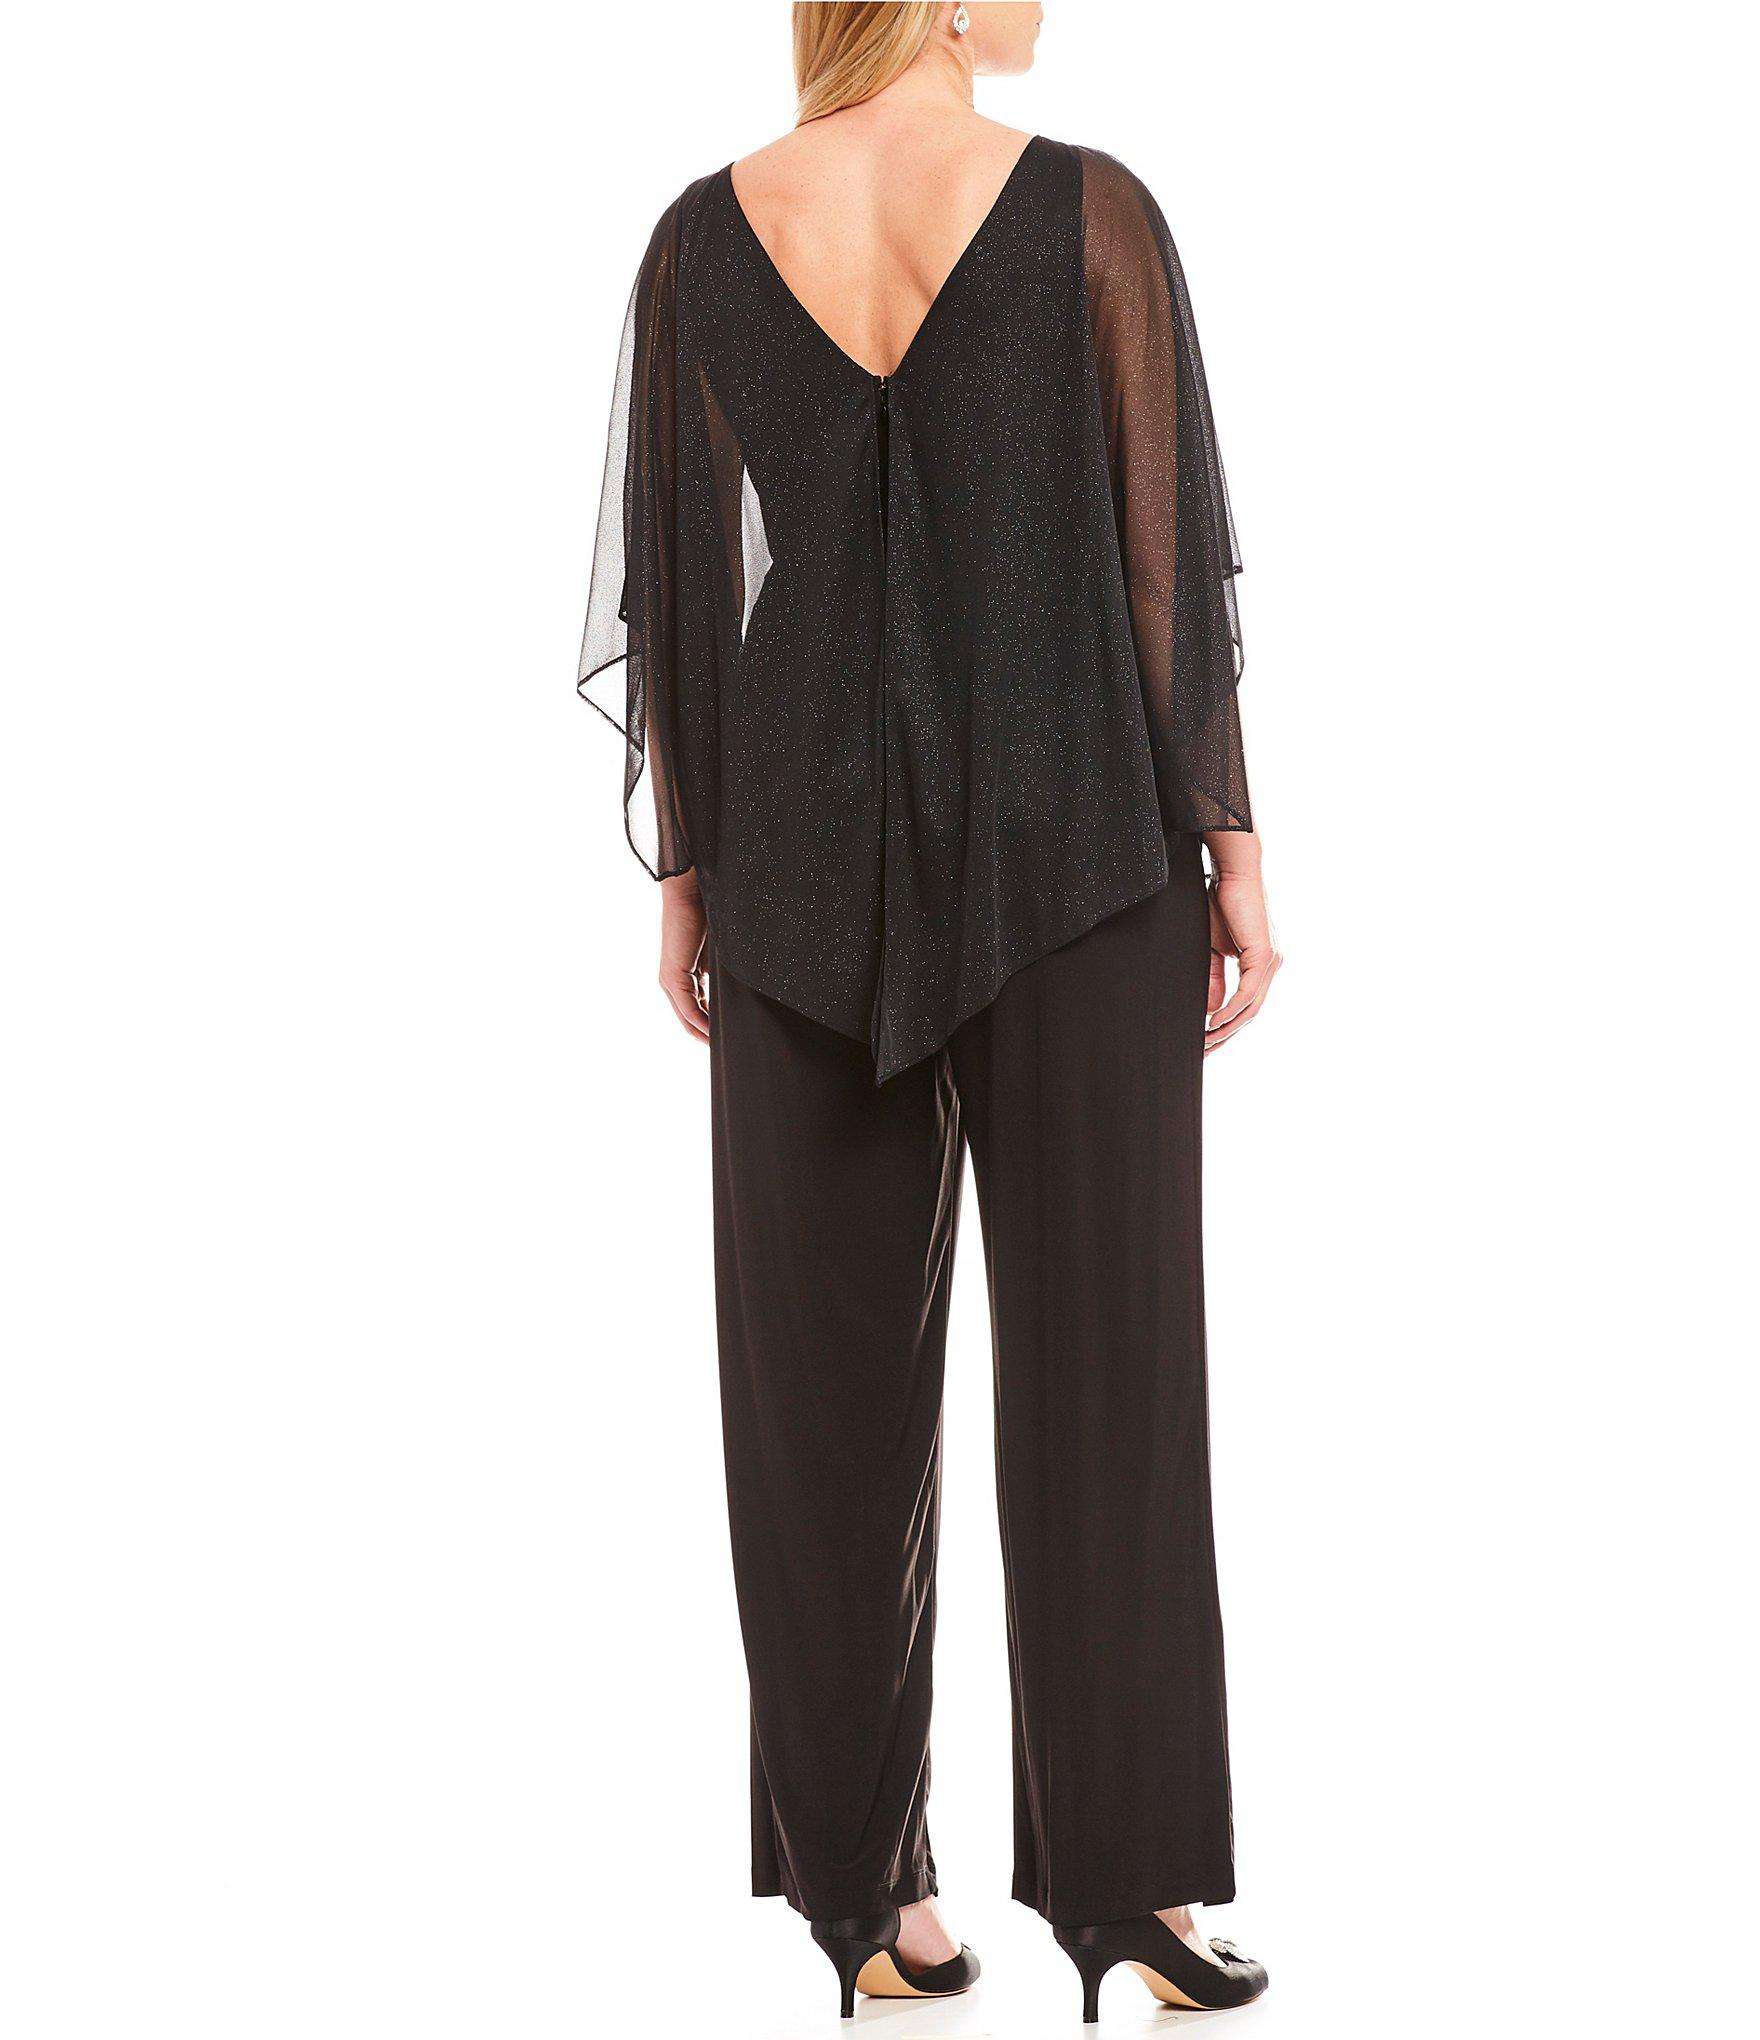 fa77618d94e8 Lyst - Marina Plus Size Sheer Glitter Overlay Capelet Jumpsuit in Black